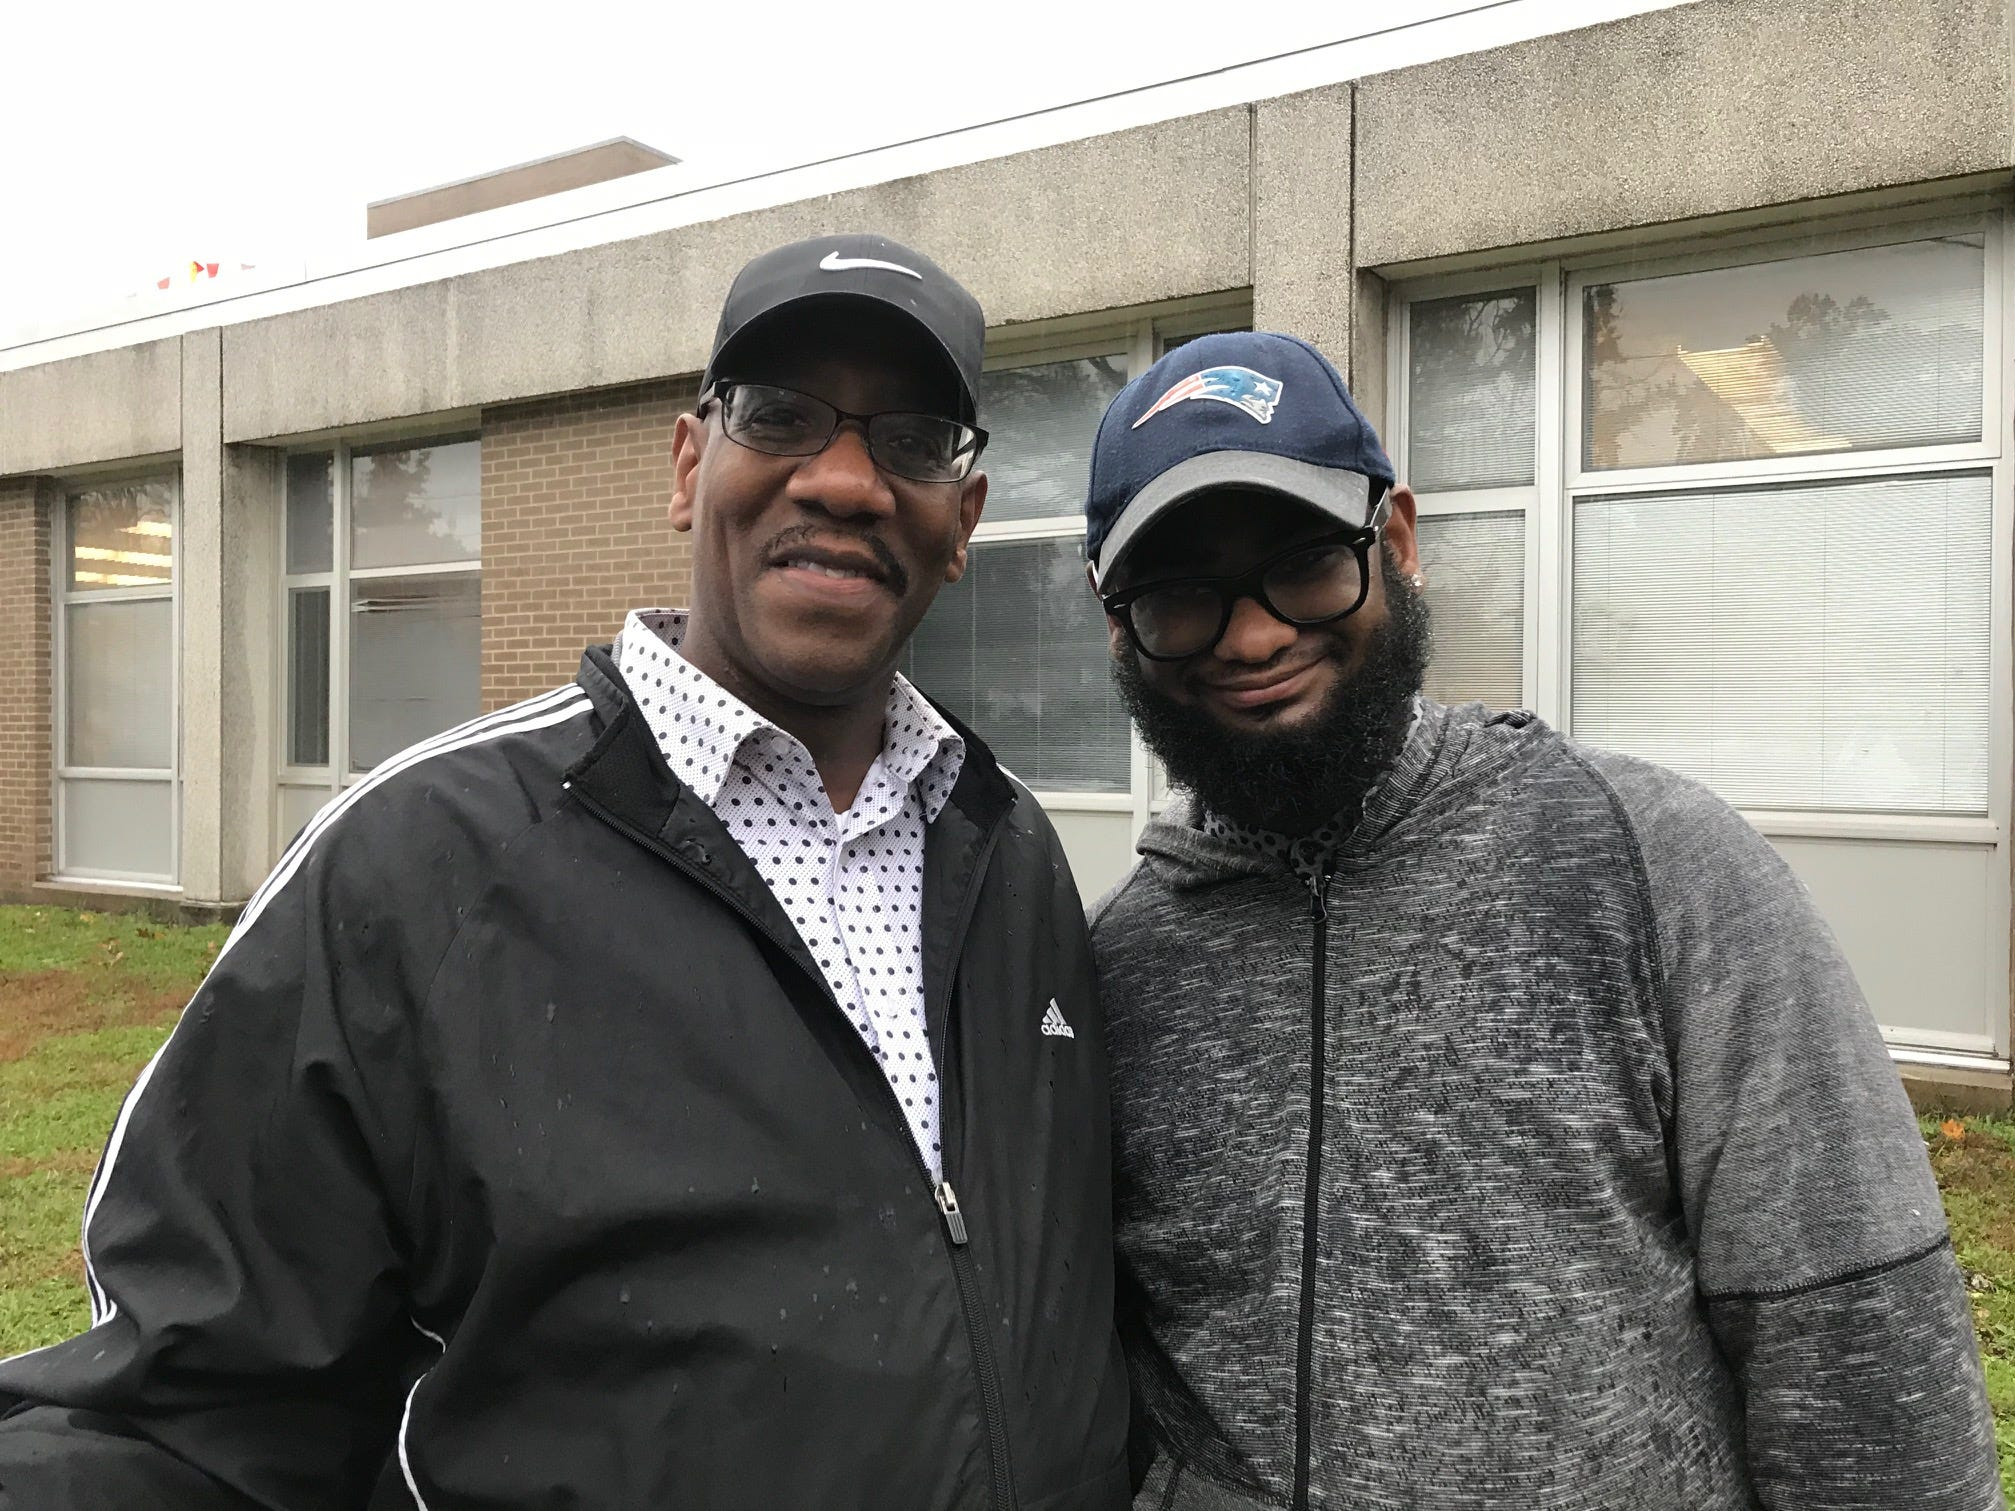 The Rev. Rayman and his son, Rayvon Wyatt, voted at Plainfield High School on Tuesday, Nov. 6.